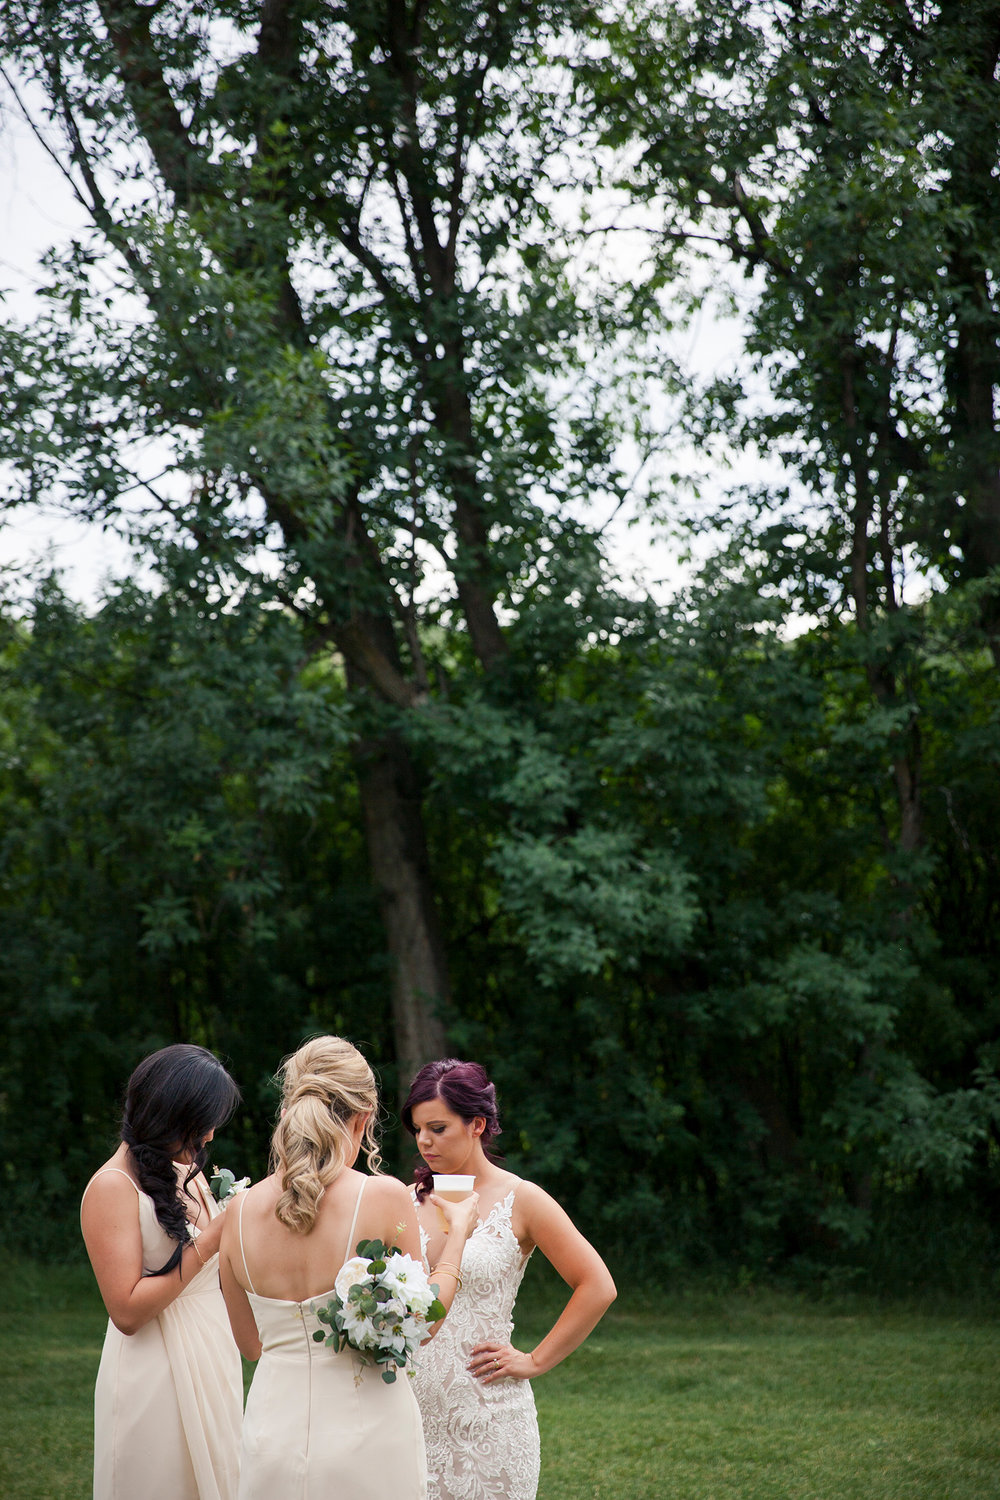 tanya-mark-wedding-213.jpg